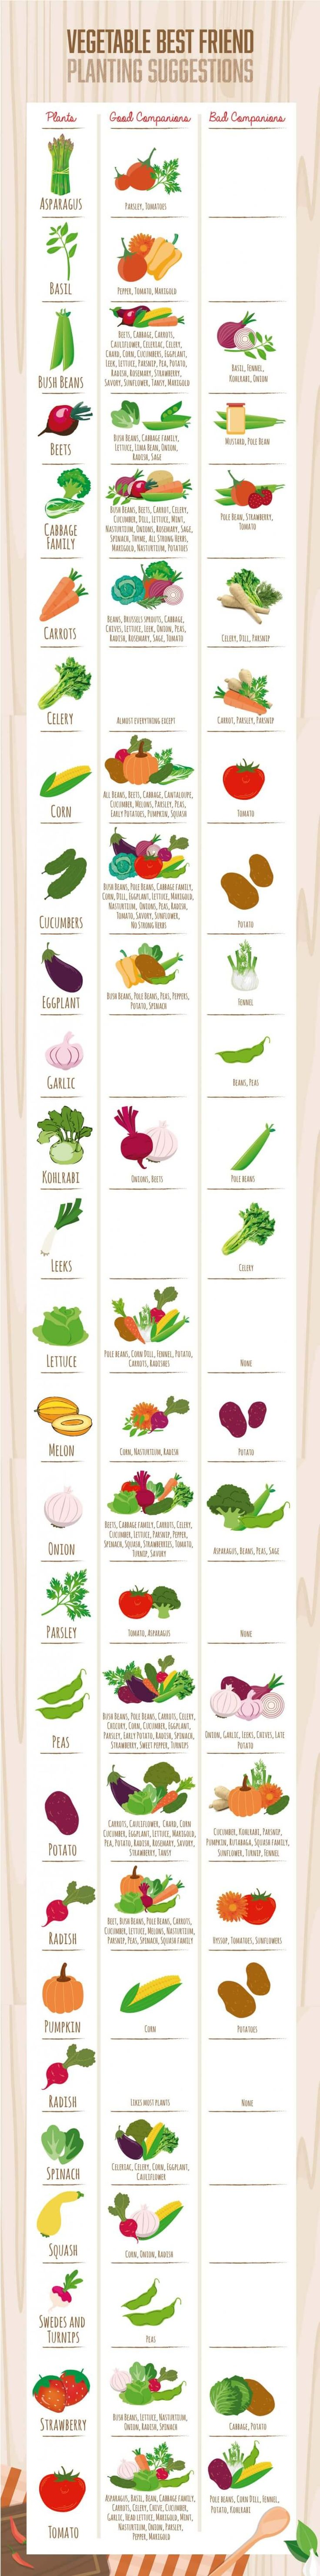 Companion Planting - Vegetable Best Friend Suggestions Infographic                                                                                                                                                                                 More